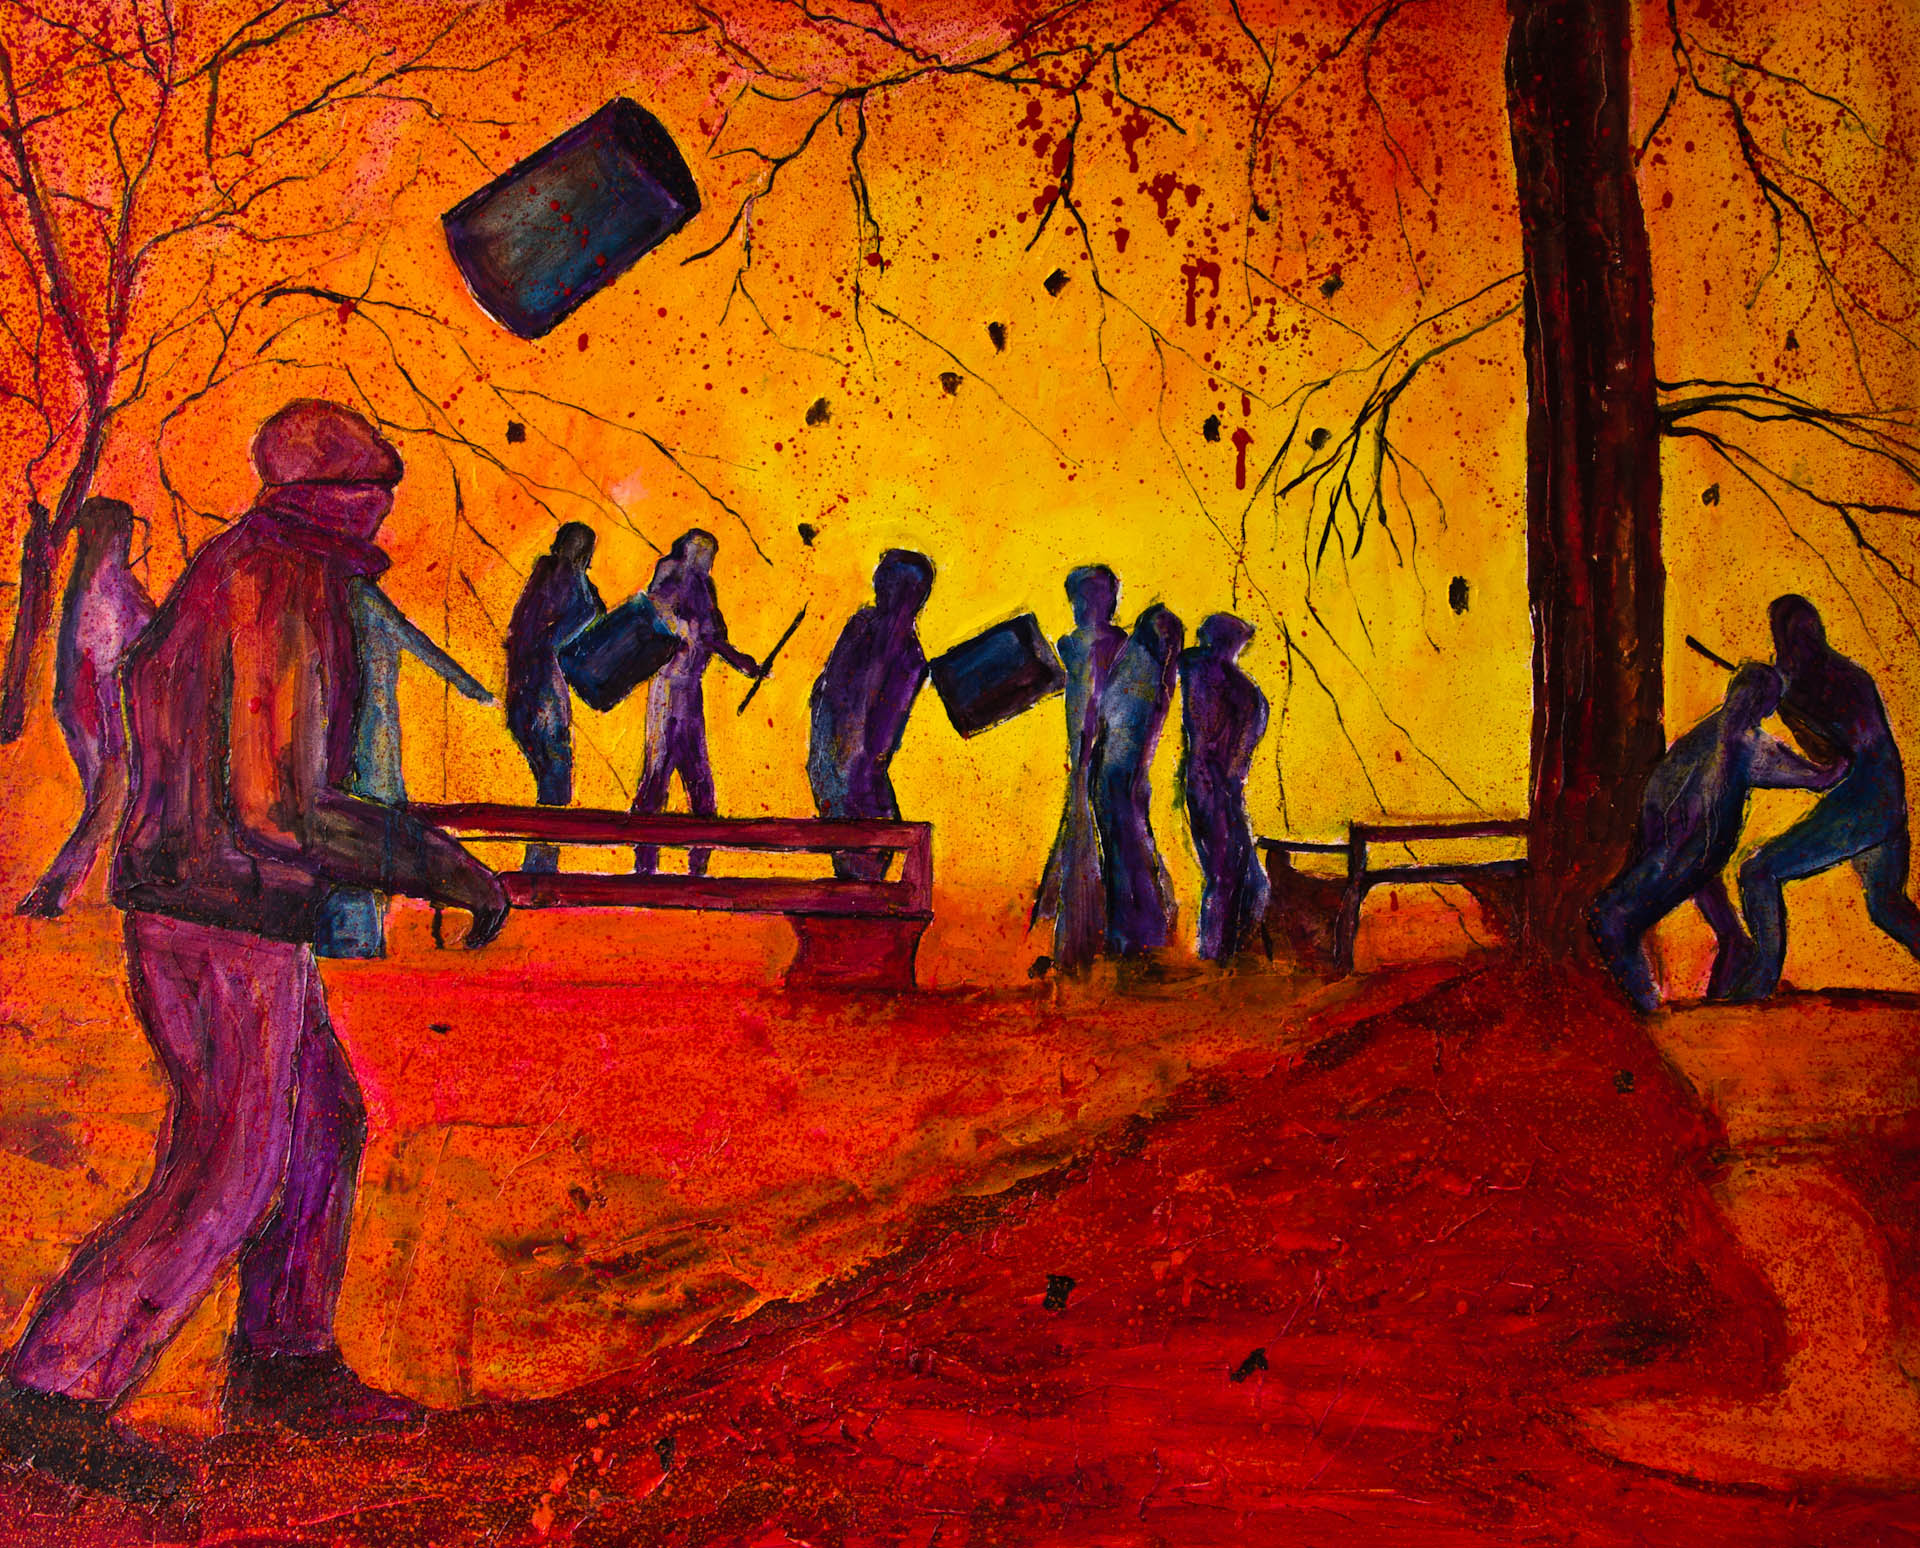 Fighting_figures_oil+on+cardboard_80x100cm_2013.jpg